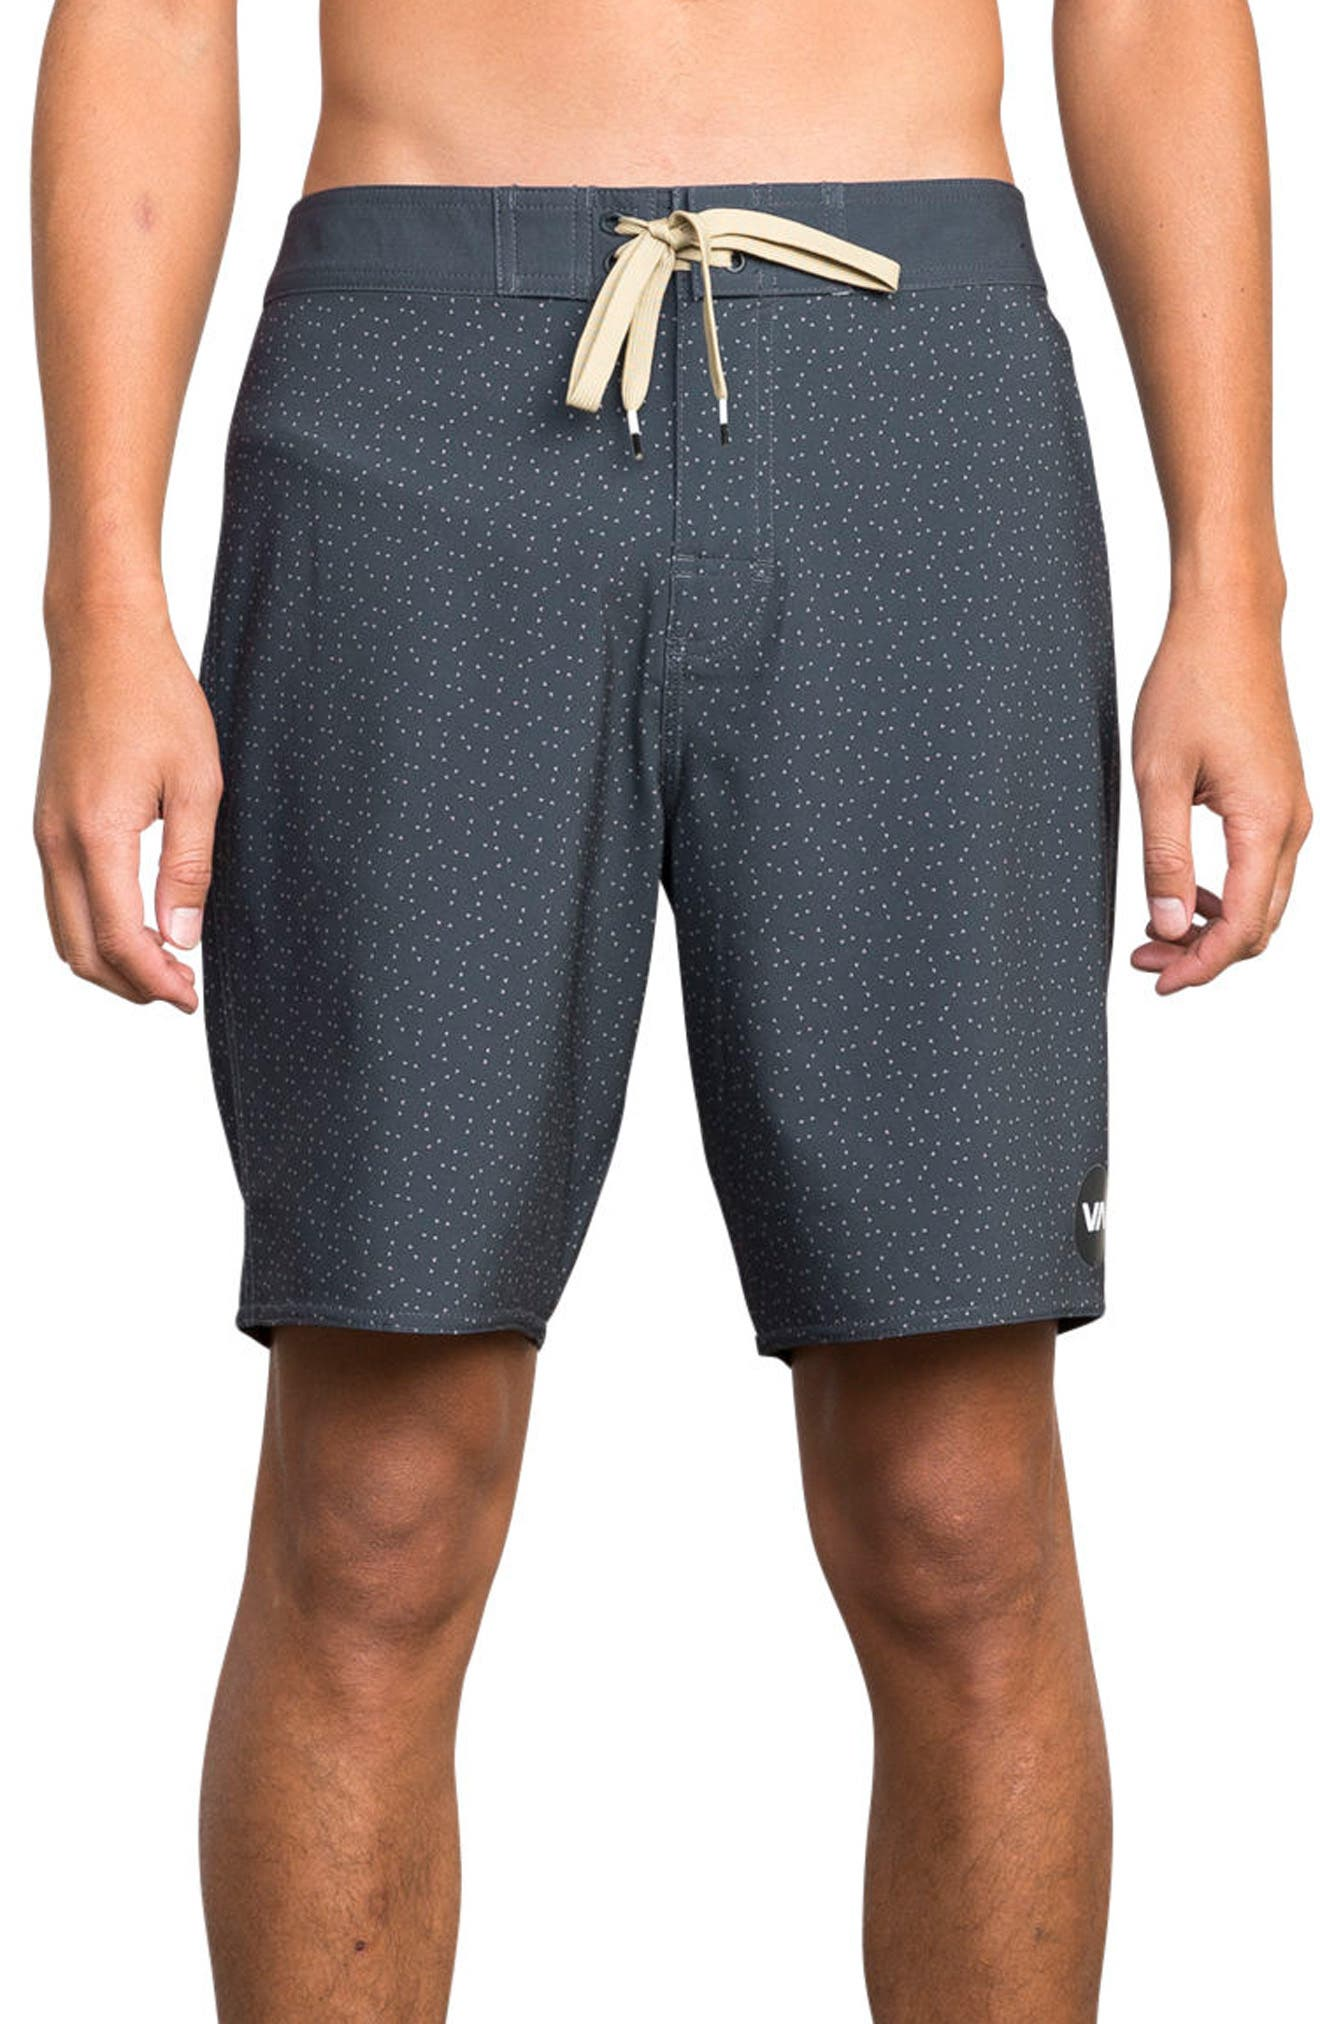 Mirage Print Board Shorts,                         Main,                         color, CLASSIC INDIGO